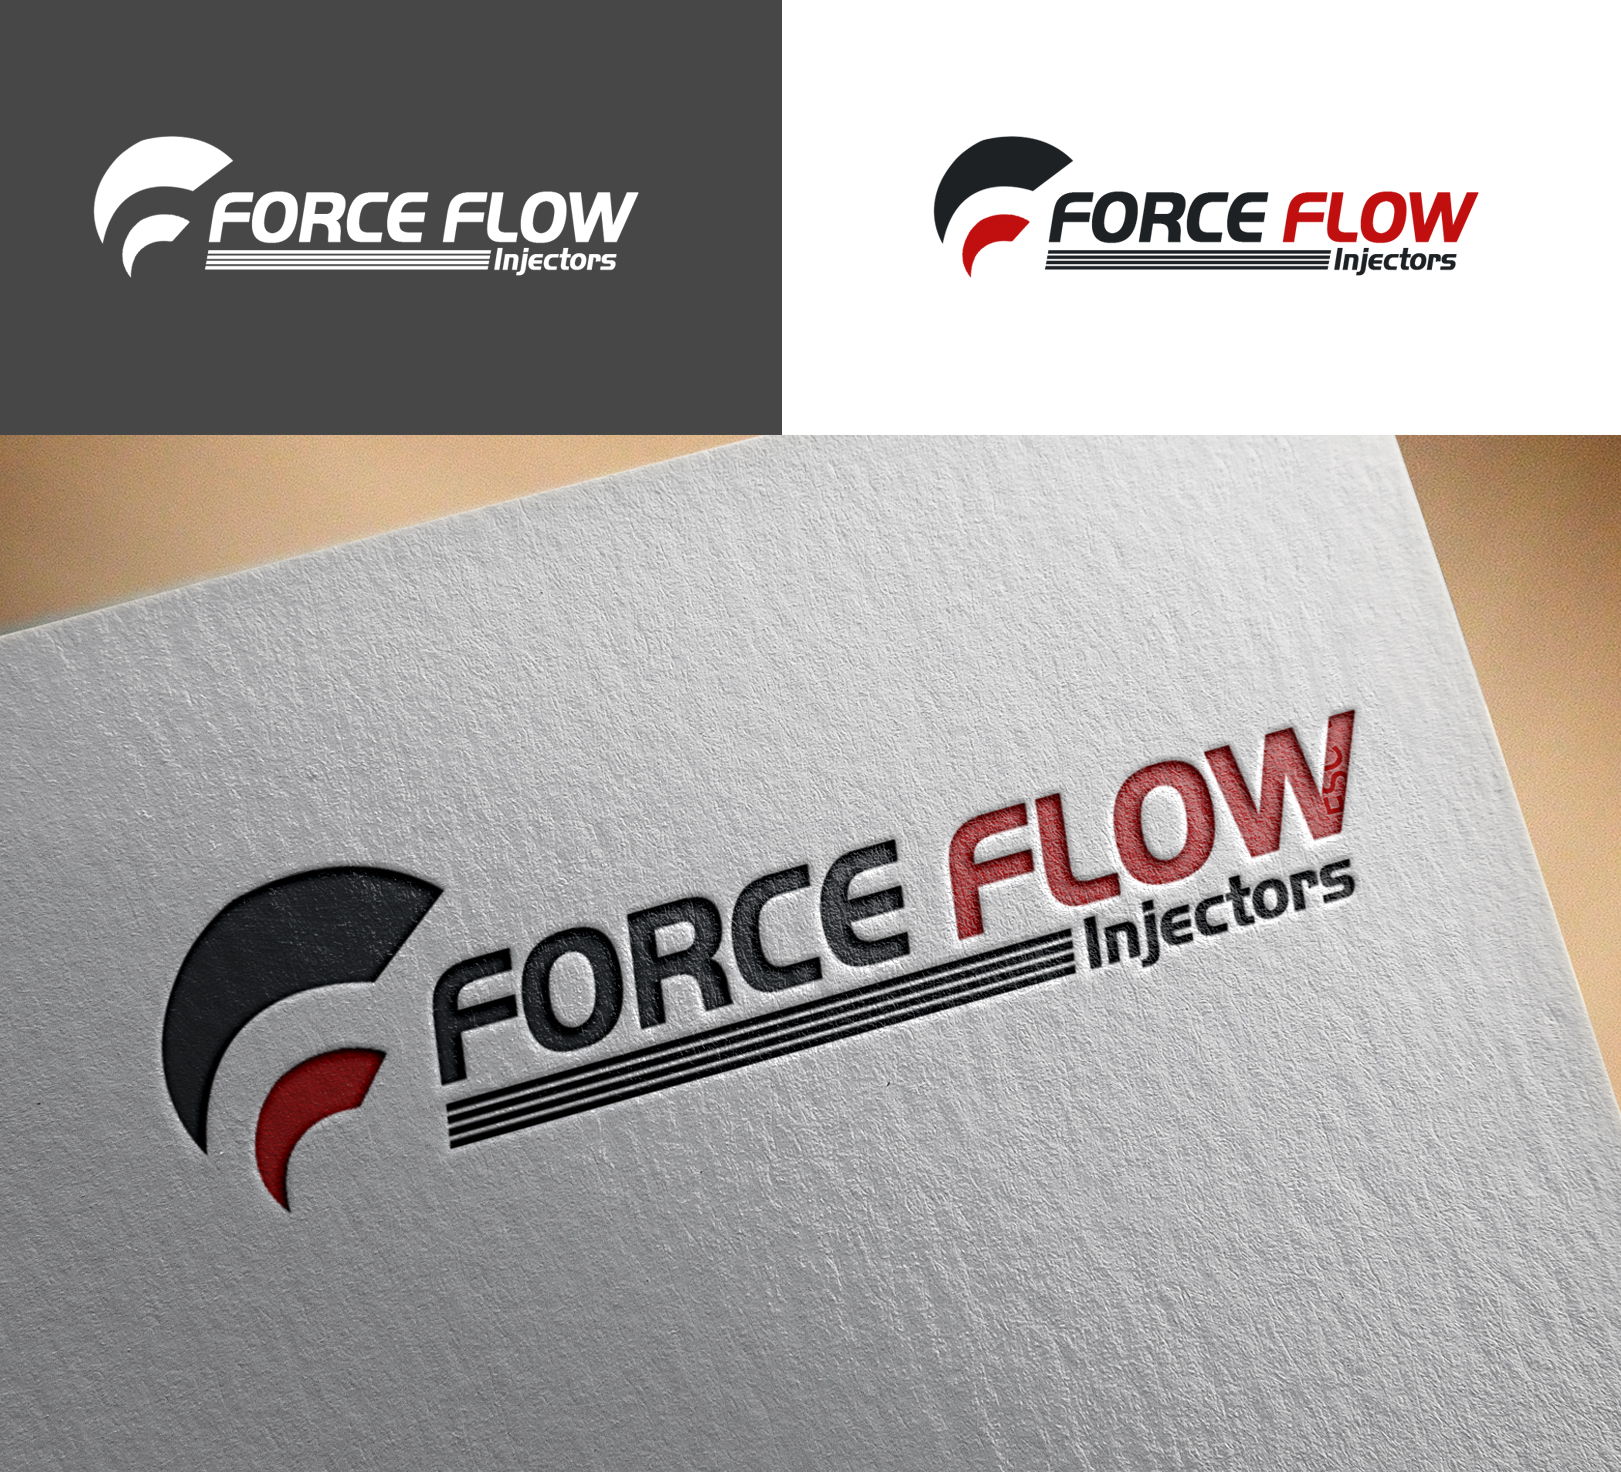 Logo Design by Sohaib Ali Khan - Entry No. 124 in the Logo Design Contest Fun Logo Design for Flow Force Injectors.